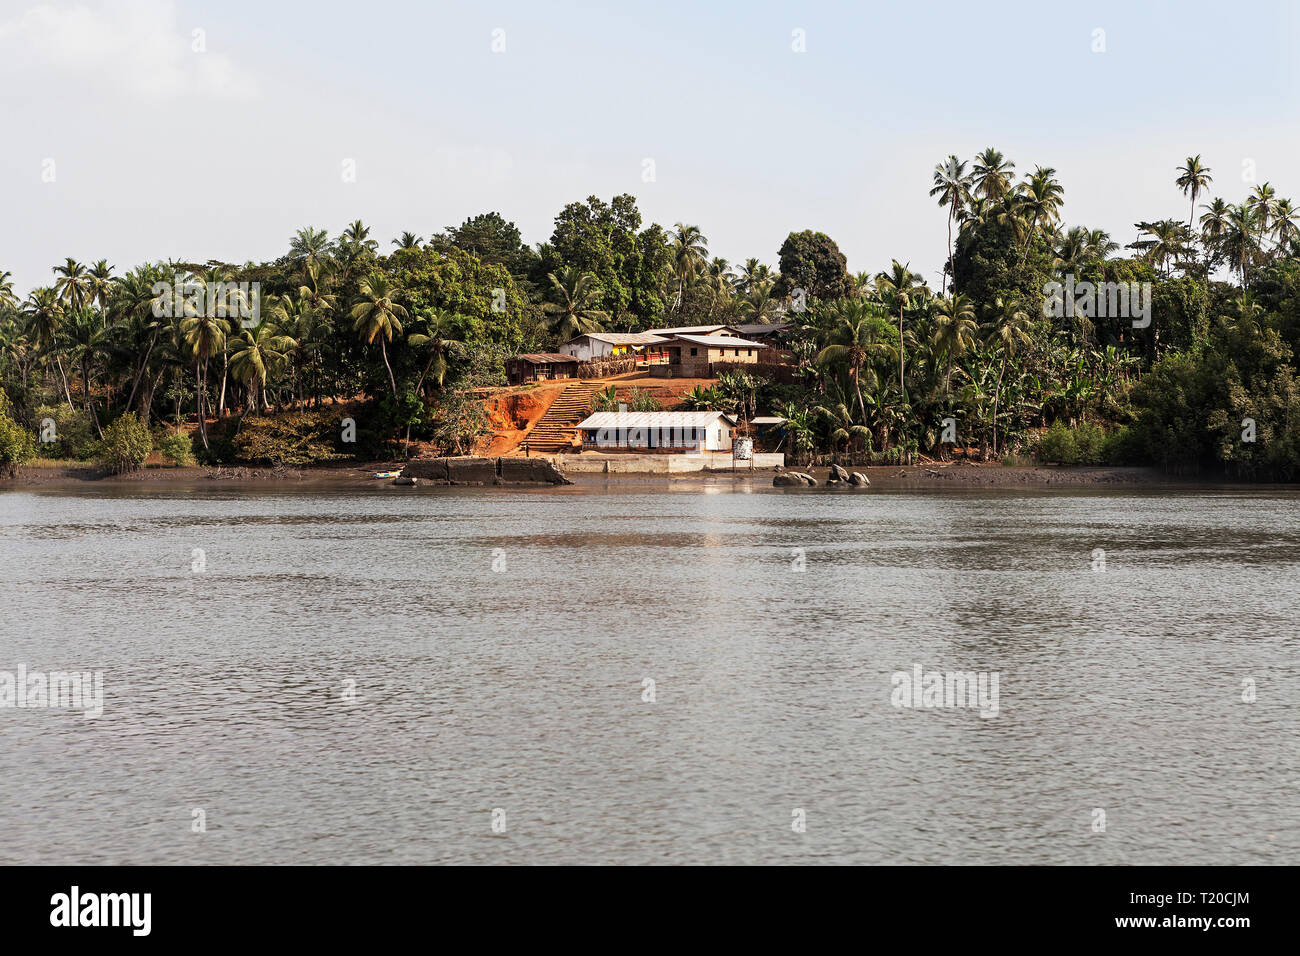 Lush tropical vegetation and African village up Port Loko Creek plus café restaurant at landing stage for small marine craft and boats, Sierra Leone Stock Photo